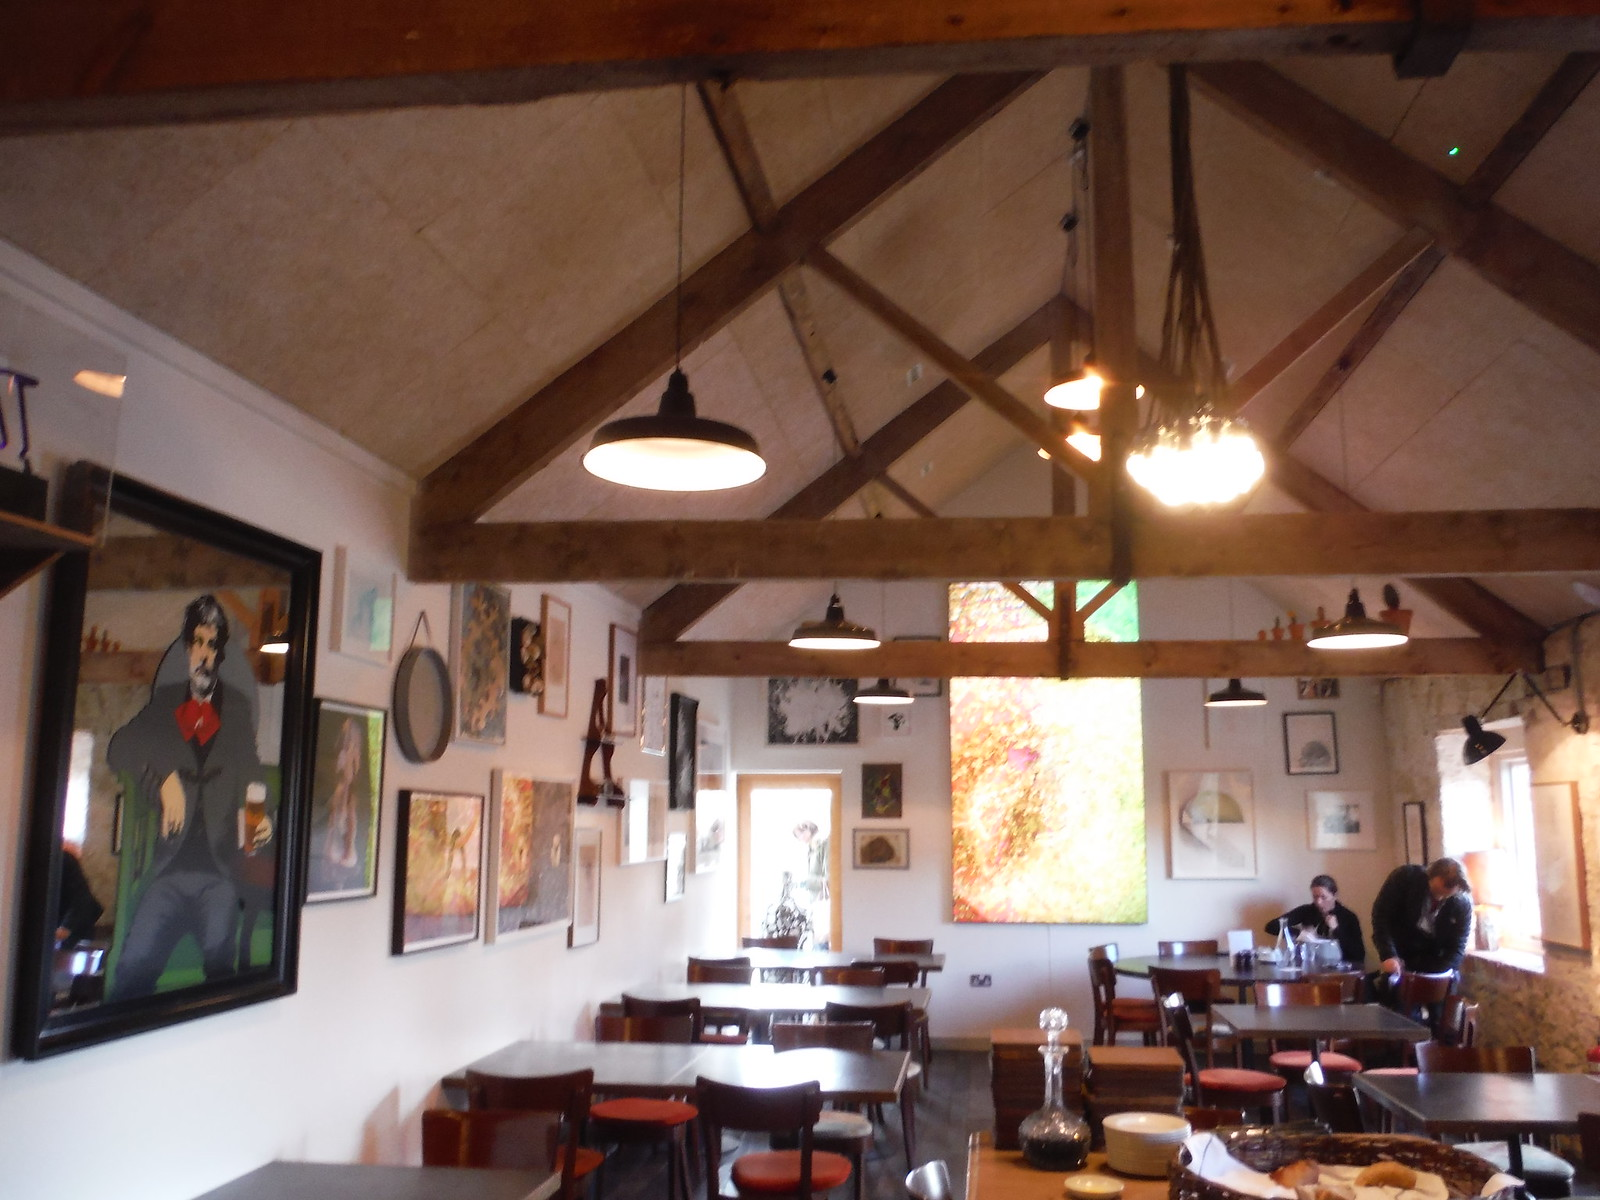 Roth Bar & Grill, Hauser & Wirth Somerset, Durslade Farm, Bruton SWC Walk 284 Bruton Circular (via Hauser & Wirth Somerset) or from Castle Cary